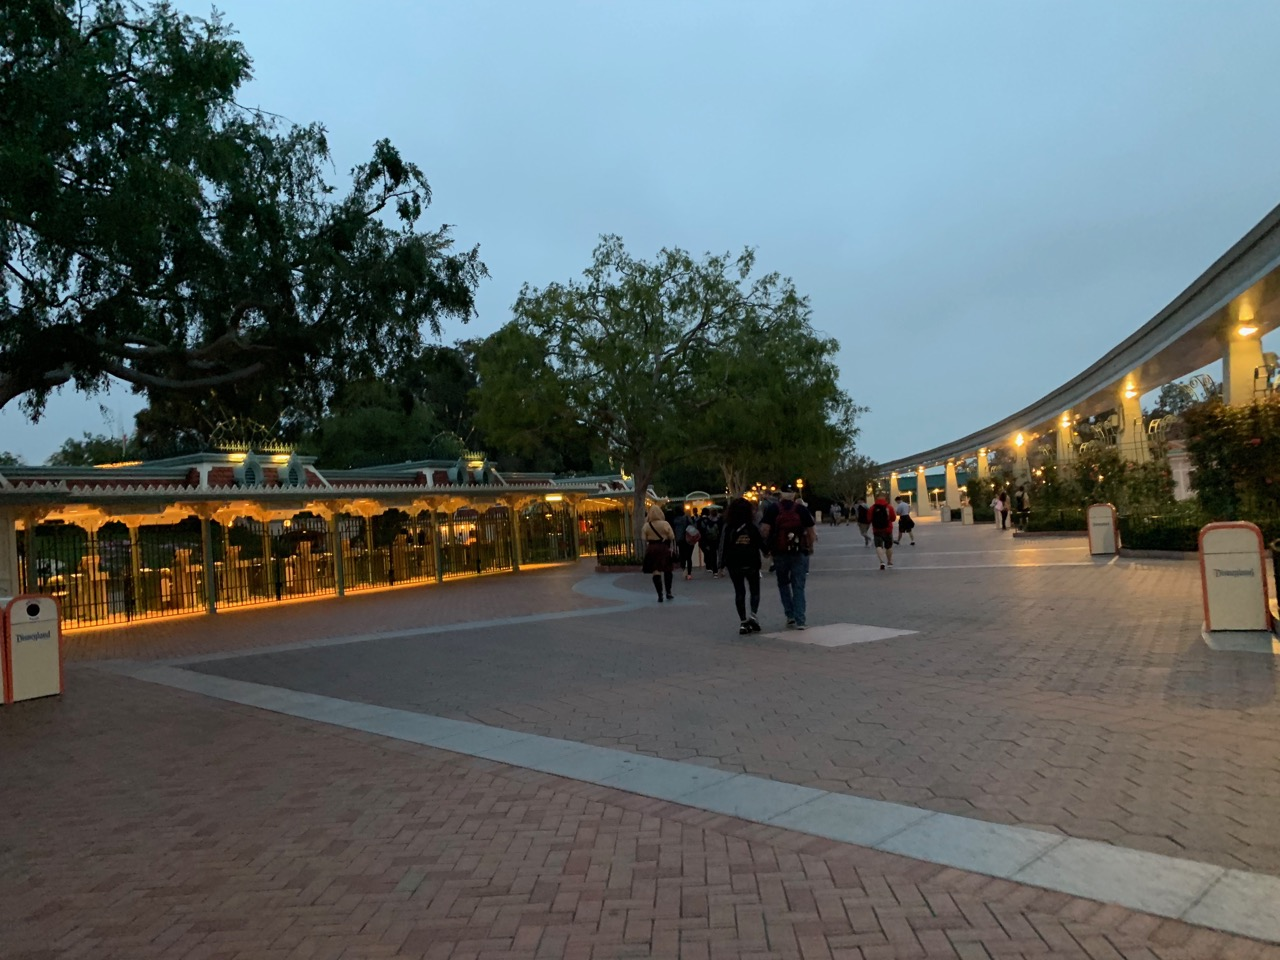 star wars land disneyland galaxys edge plan touring strategy 15 morning gate.jpeg